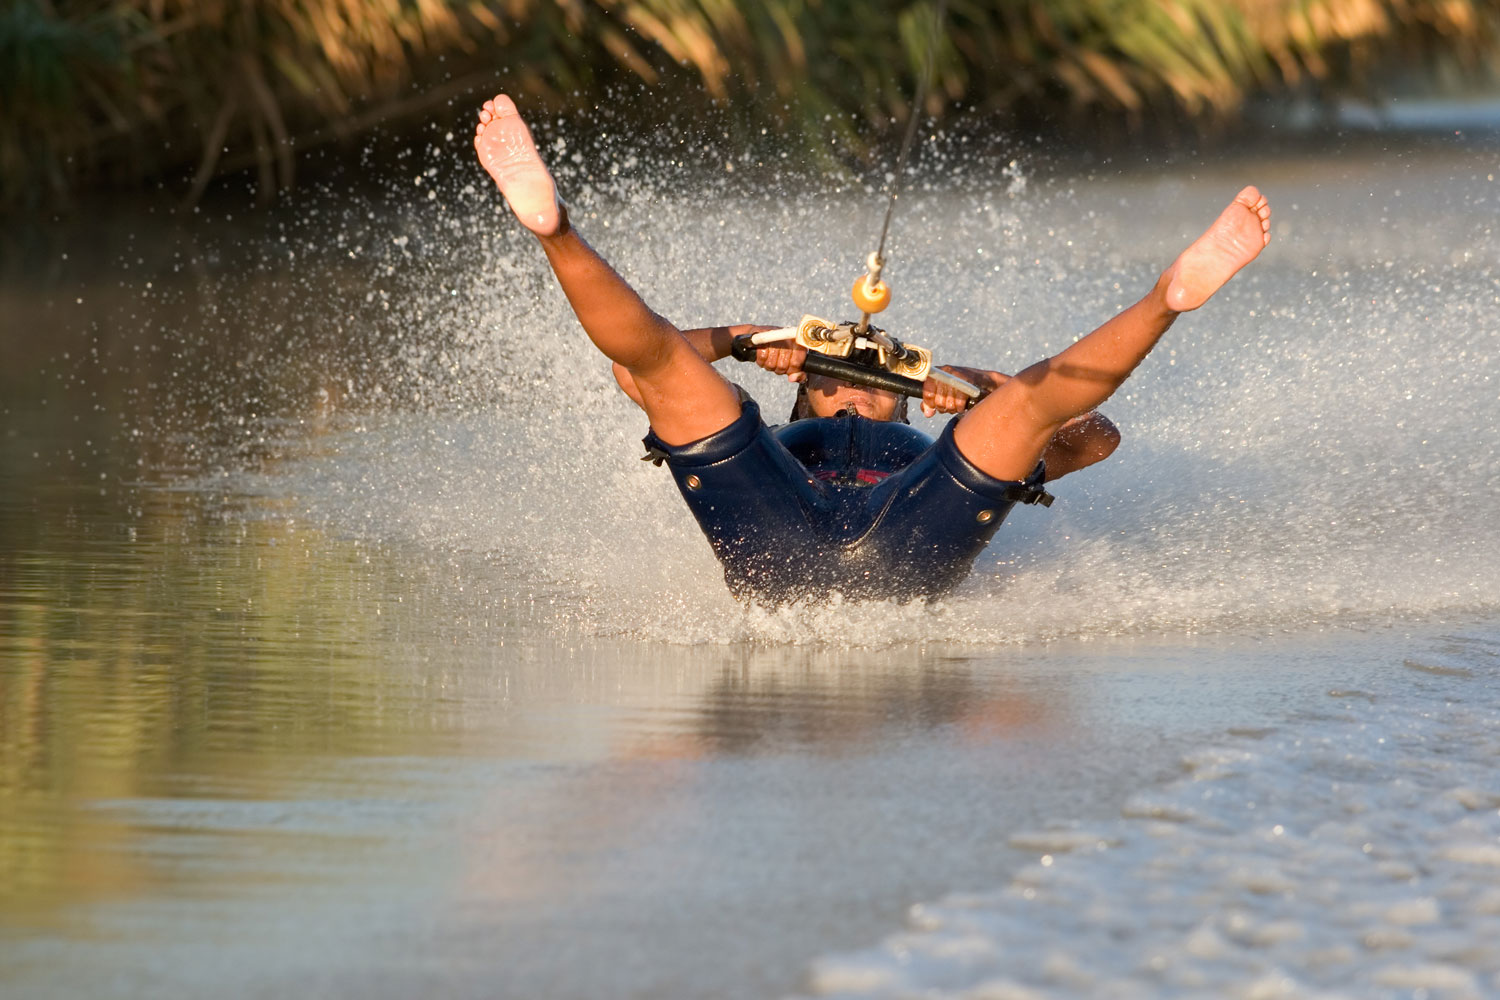 Barefoot Water Skier on her Back with Water Spray